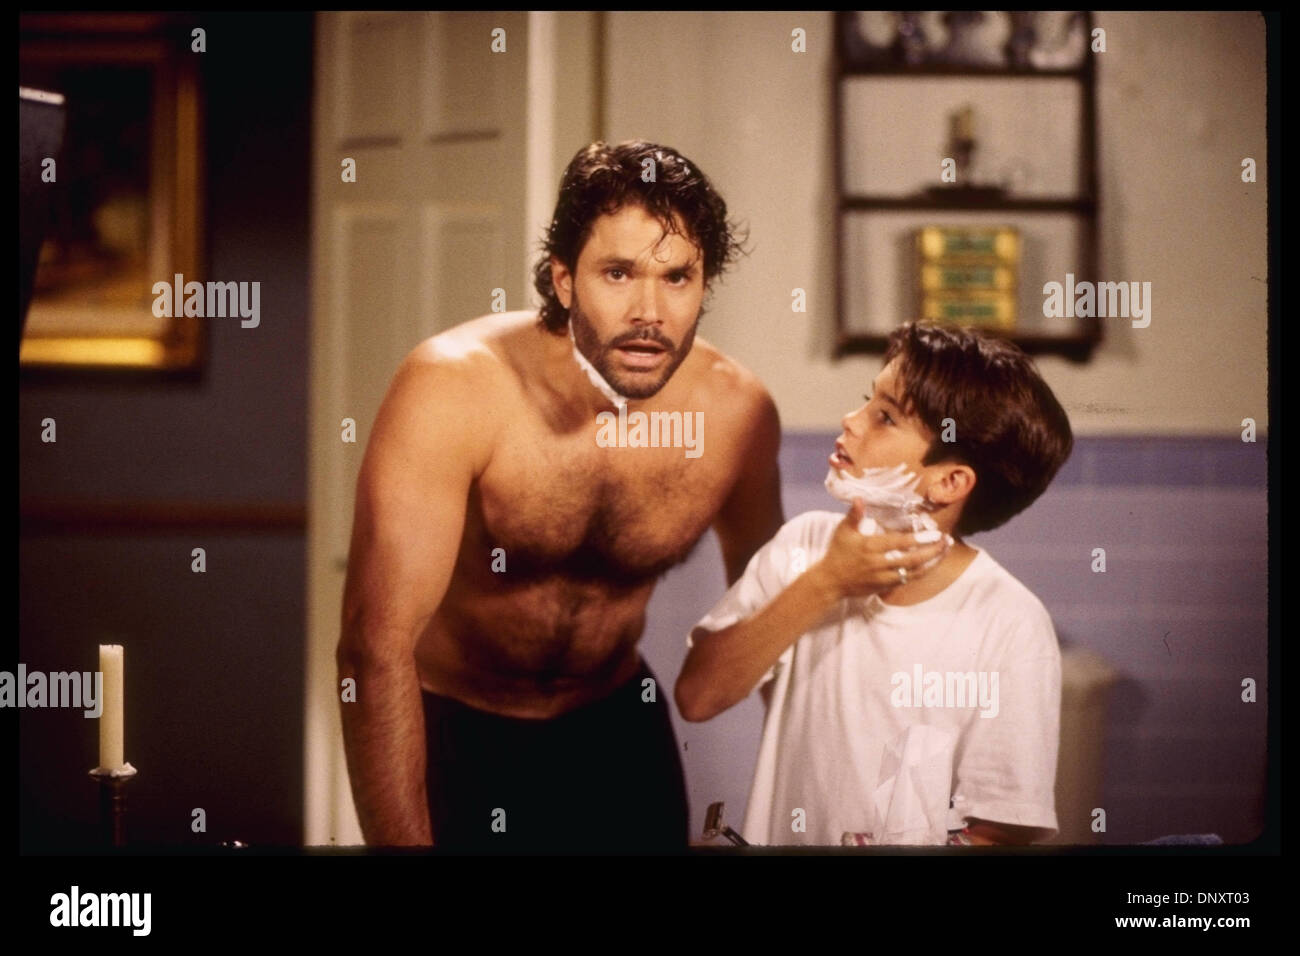 peter reckell on days of our livespeter reckell twitter, peter reckell daughter, peter reckell net worth, peter reckell wife, peter reckell family, peter reckell age, peter reckell instagram, peter reckell 2016, peter reckell now, peter reckell returning to days 2017, peter reckell imdb, peter reckell movies, peter reckell return, peter reckell photos, peter reckell facebook, peter reckell on days of our lives, peter reckell pictures, peter reckell coming back to dool, peter reckell images, peter reckell house